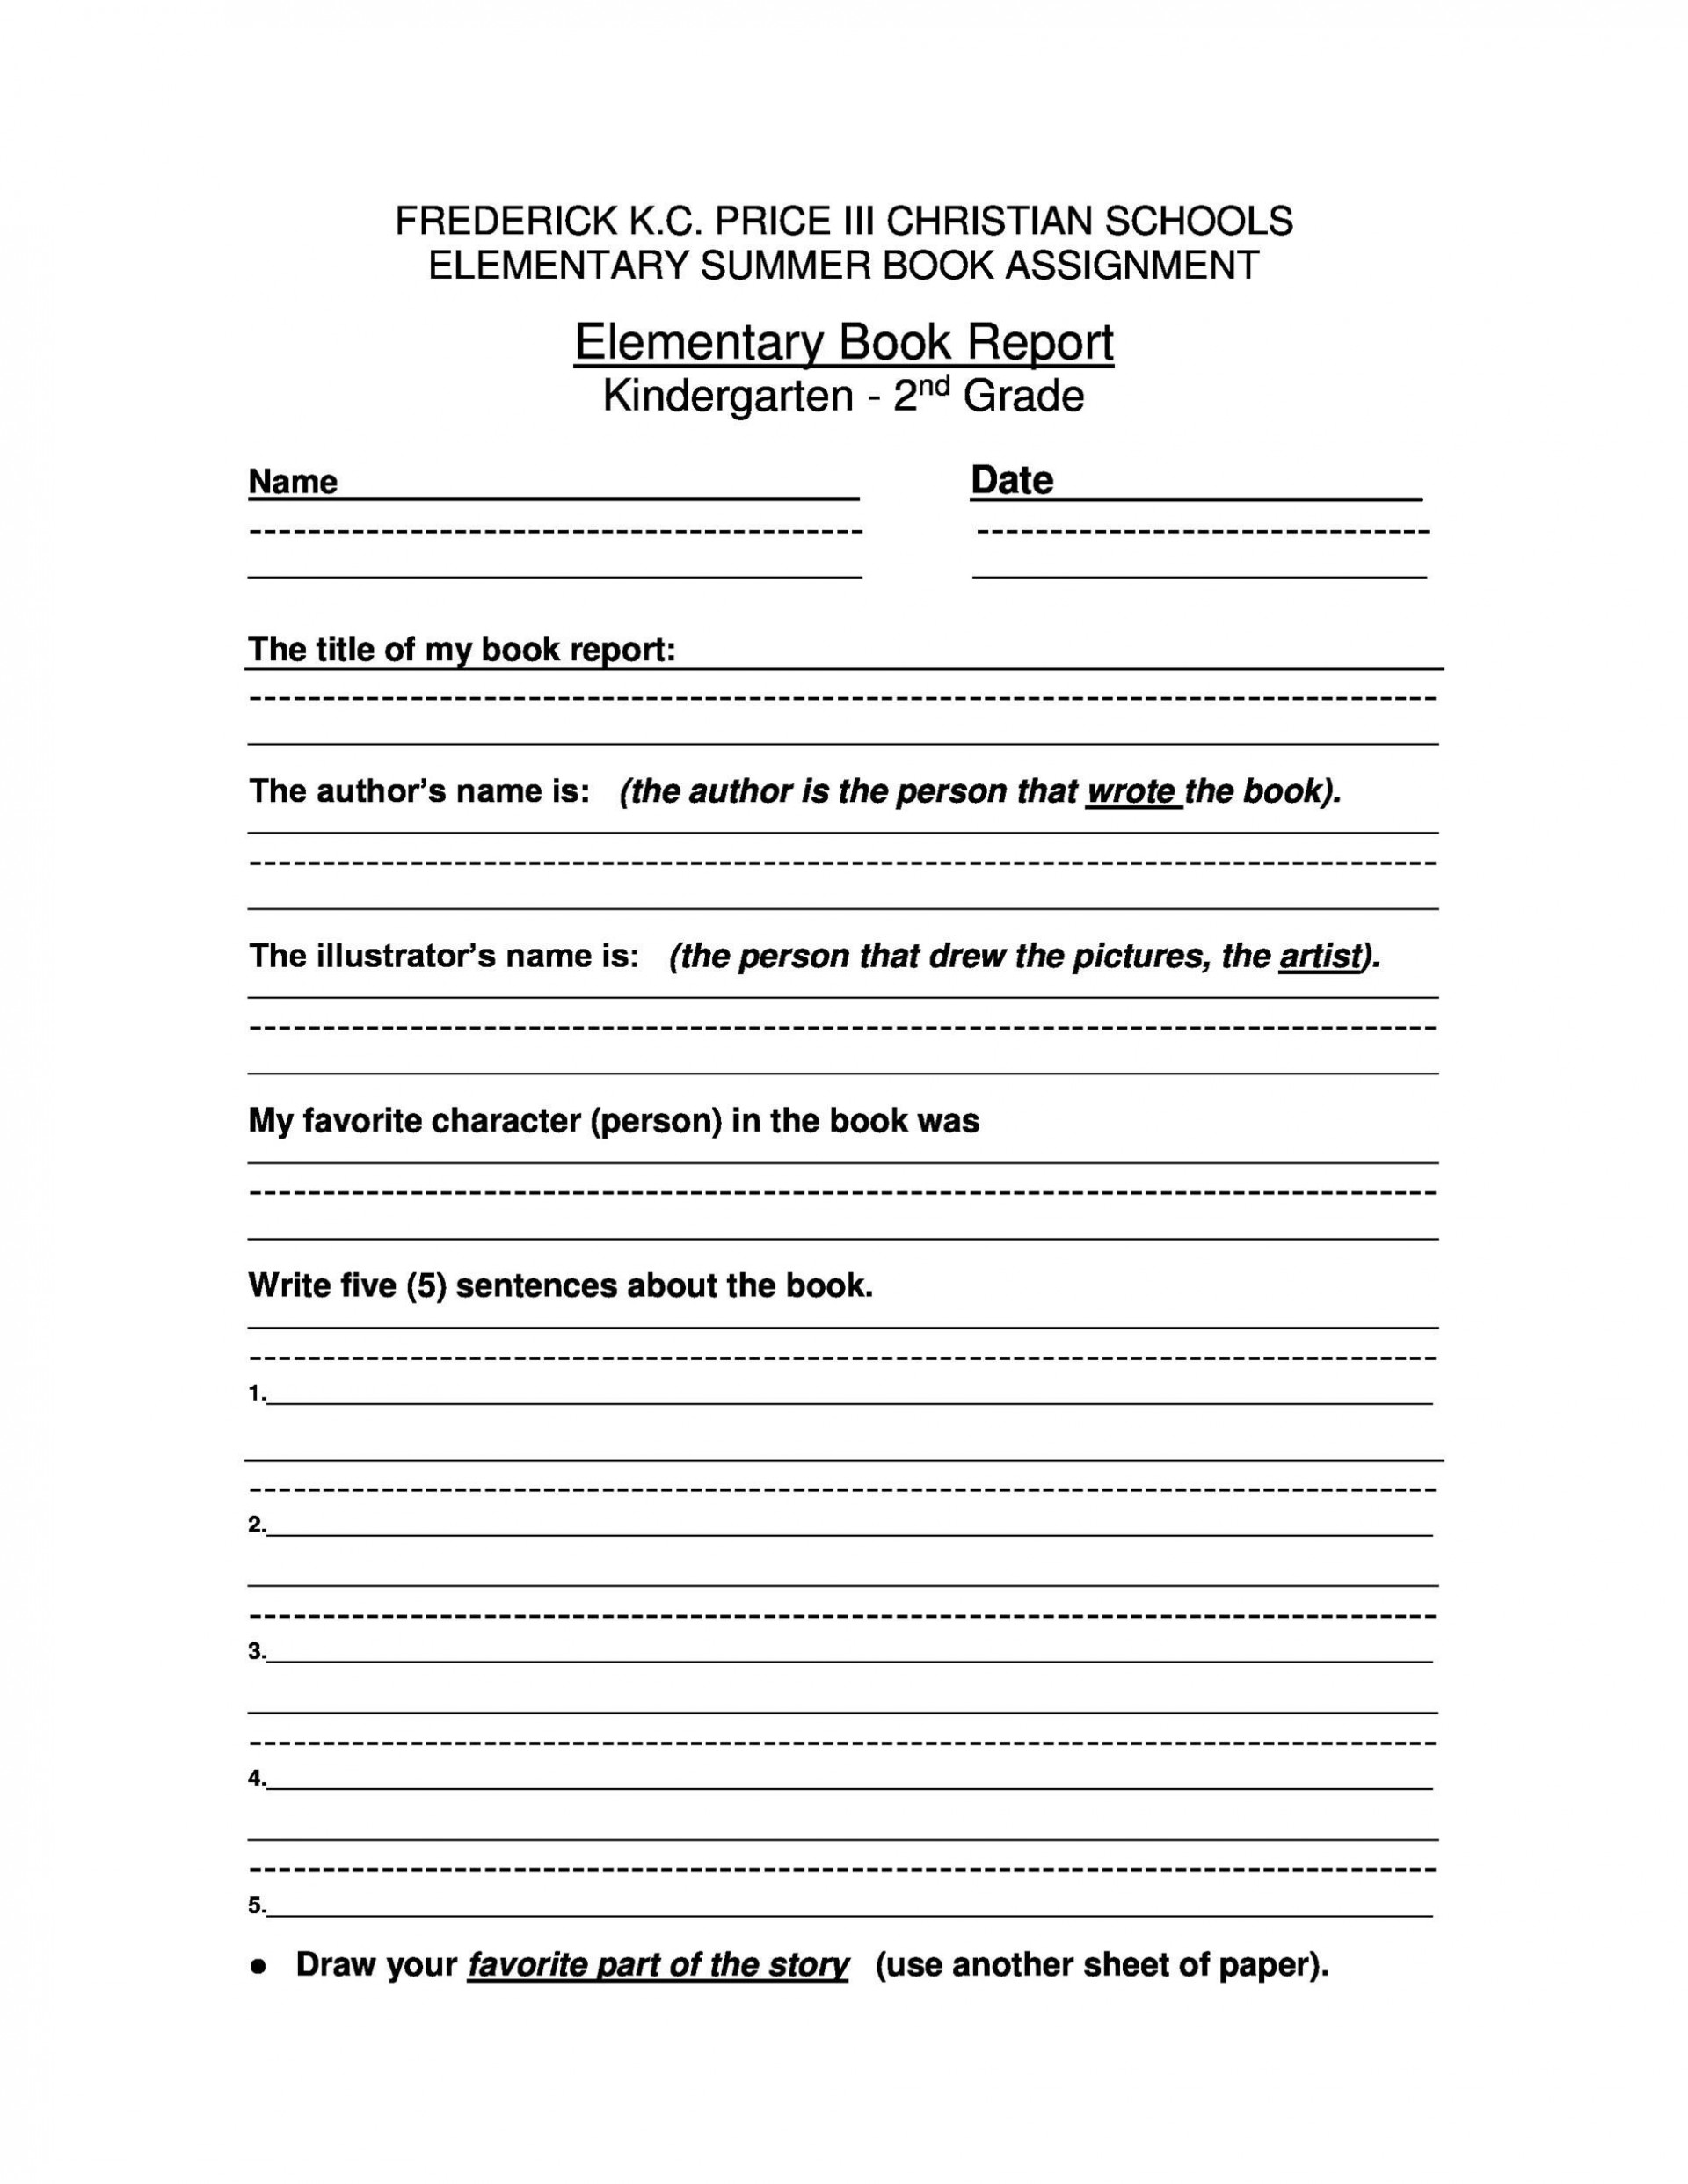 005 Magnificent 6th Grade Book Report Template Image  Sixth Format Printable Middle School1920